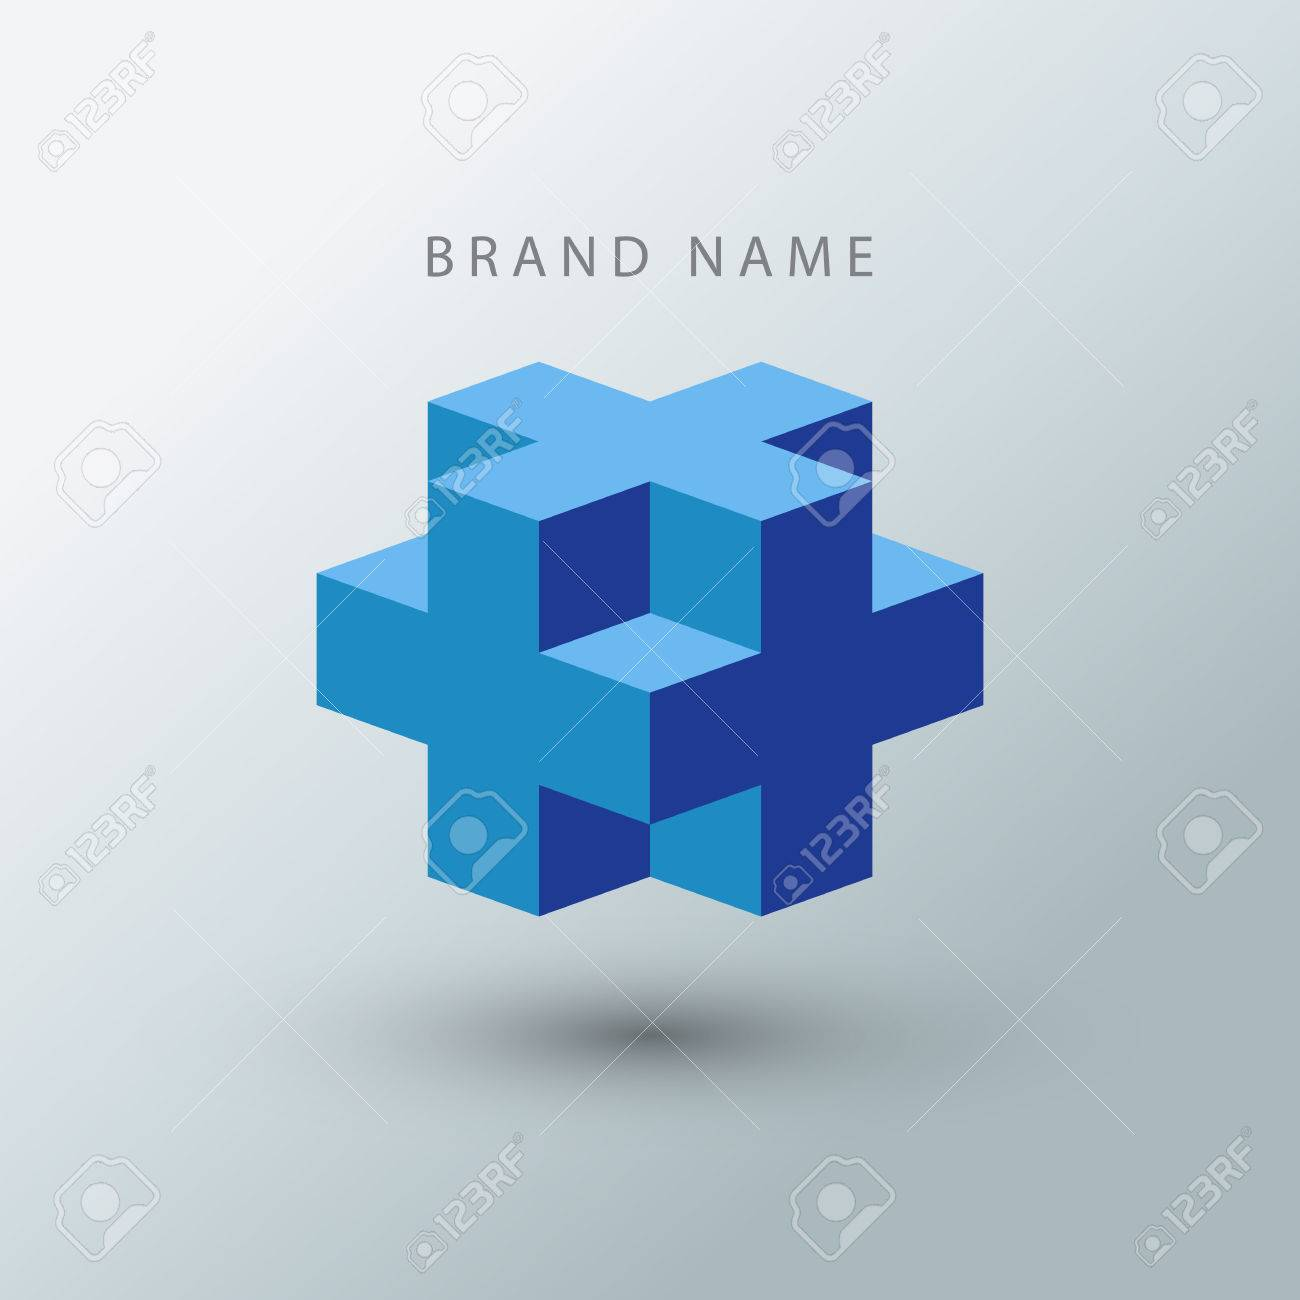 cube logo design template royalty free cliparts vectors and stock